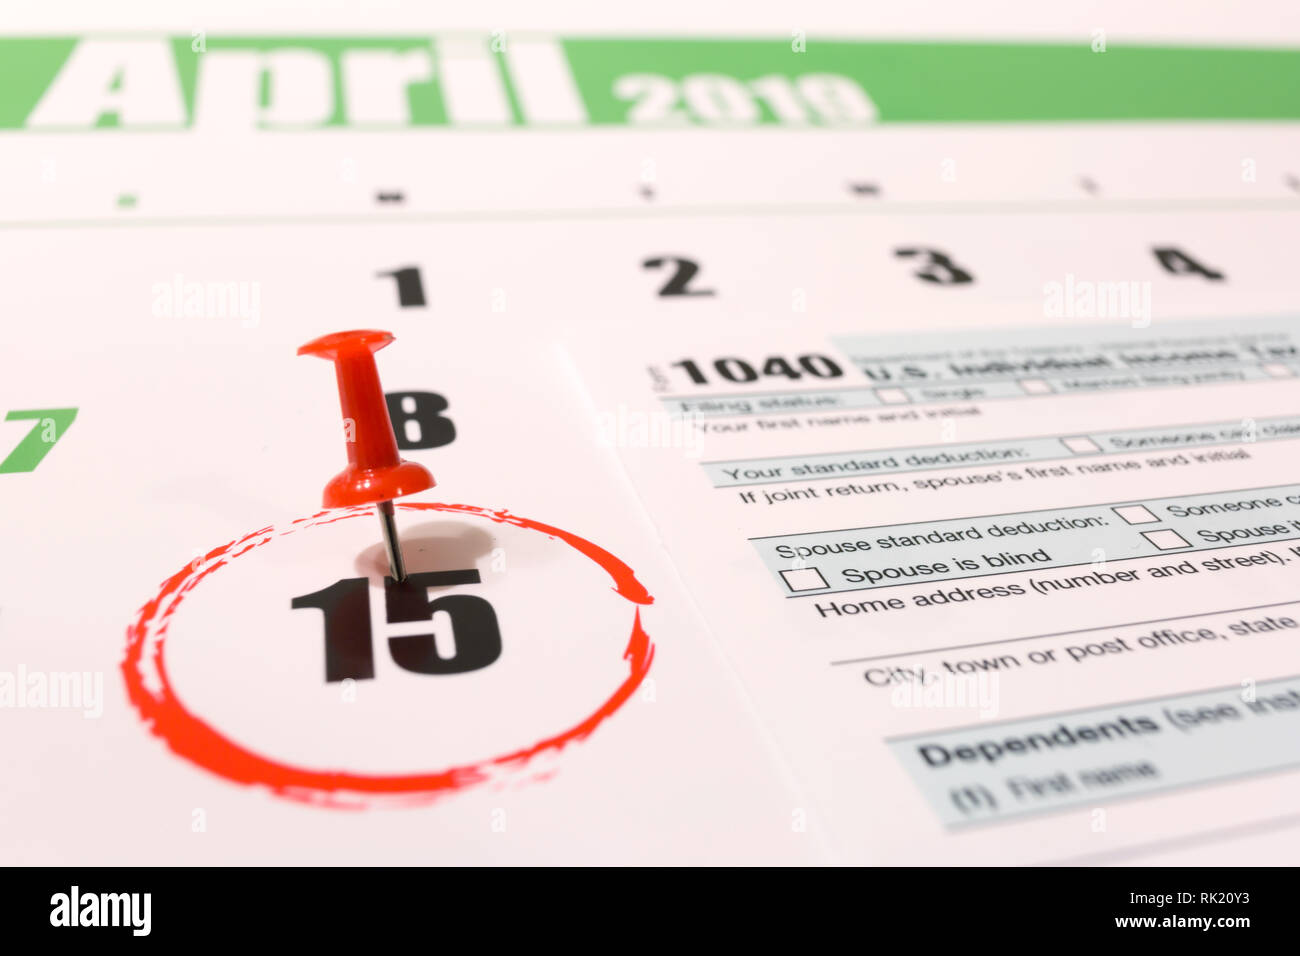 2019 calendar with 1040 income tax form for 2018 showing tax day for filing on April 15 Stock Photo